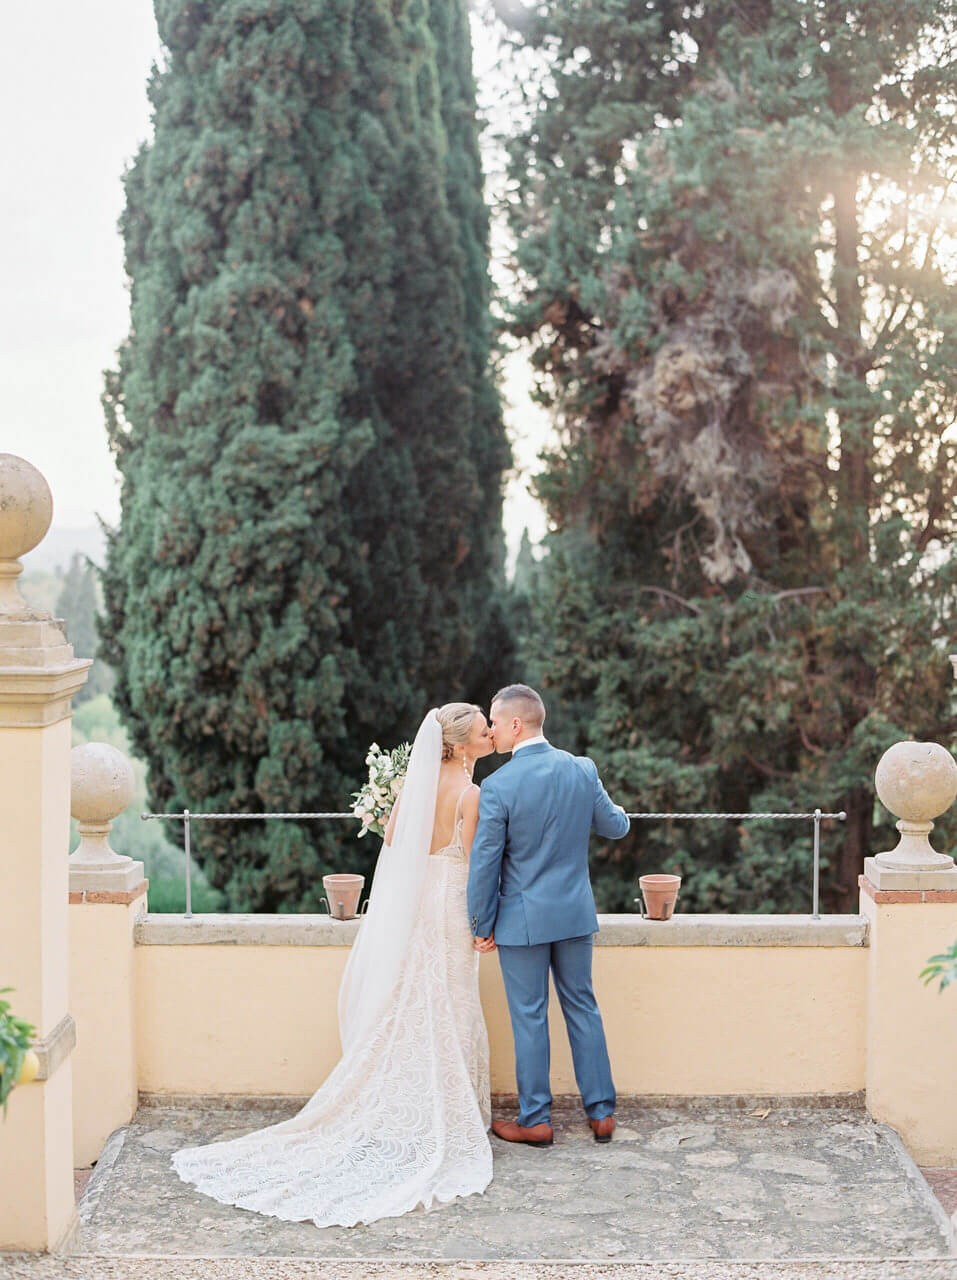 Sunset wedding views in Florence - Adrian Wood Photography